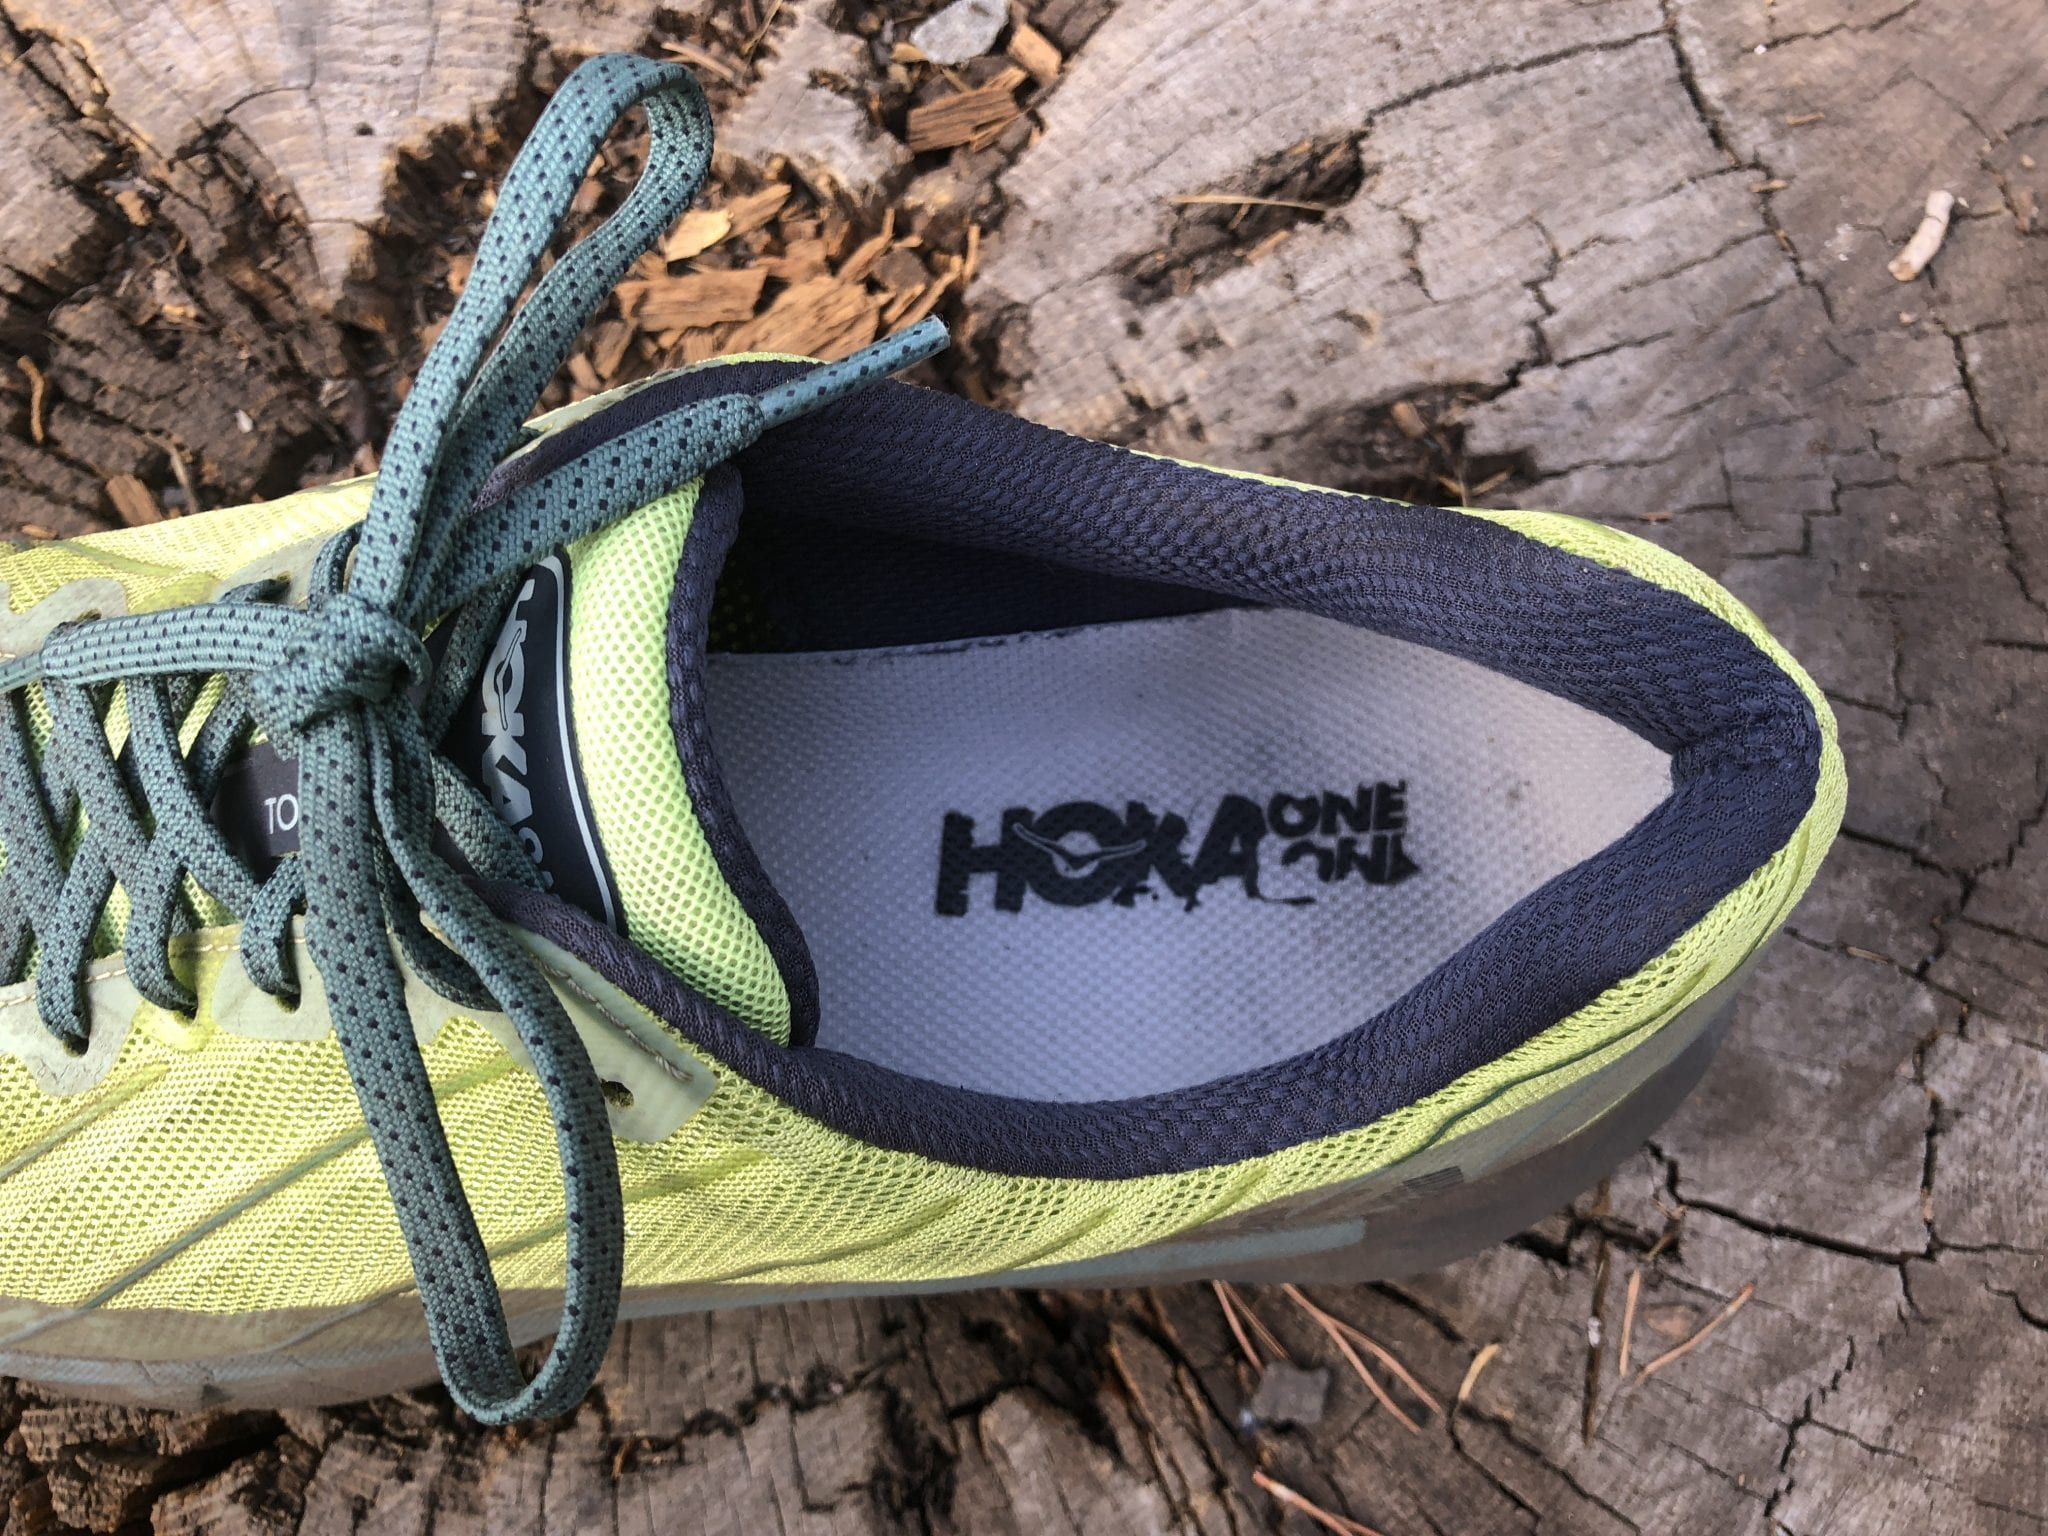 HokaOneOne Torrent 7